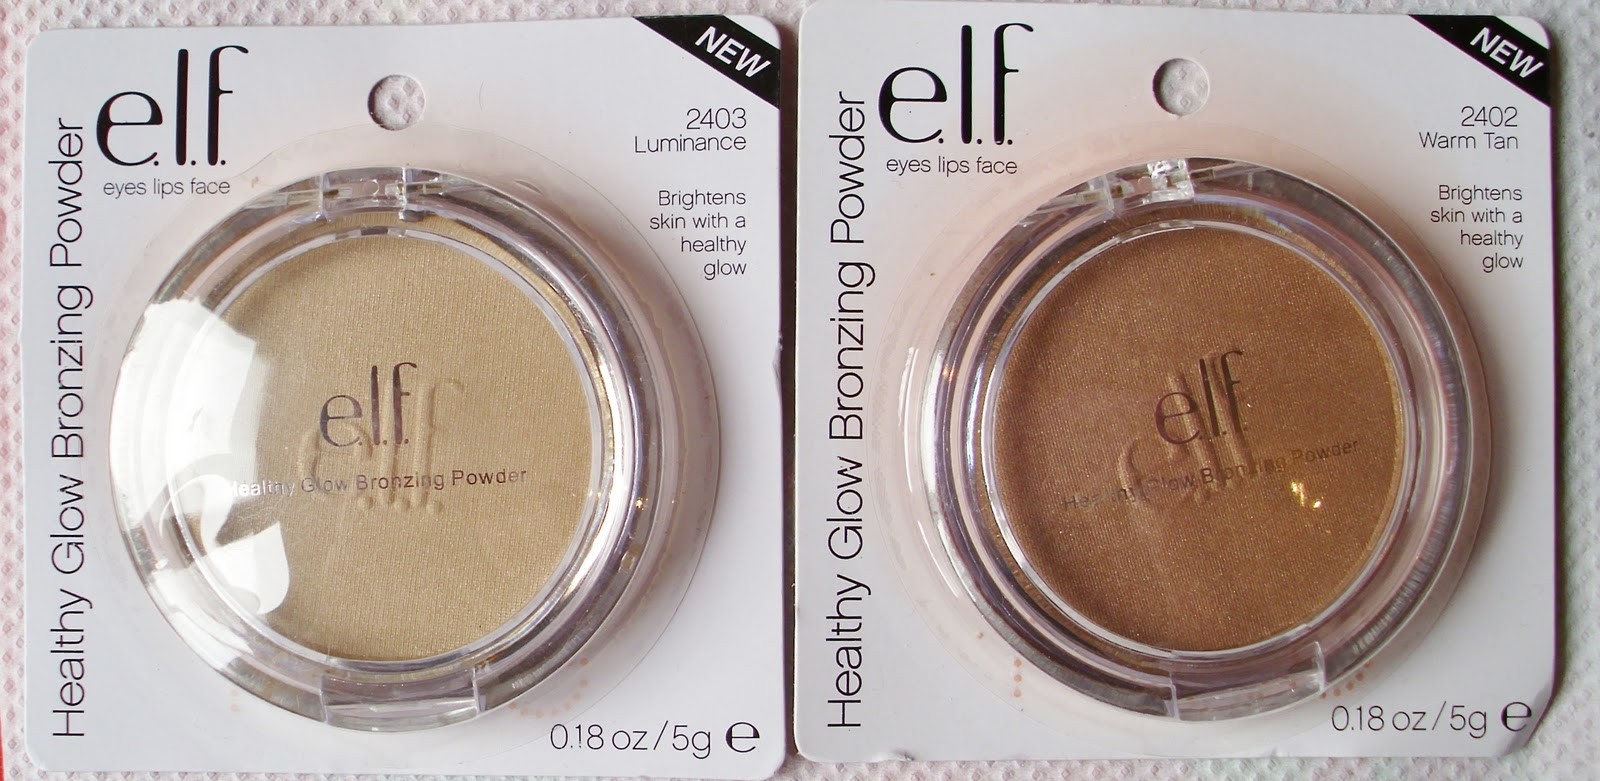 Ninas bargain beauty elf healthy glow bronzing powders review hey everyone today i am reviewing the healthy glow bronzing powders in luminance and warm tan by elf there are 4 different bronzes from the essential ccuart Choice Image